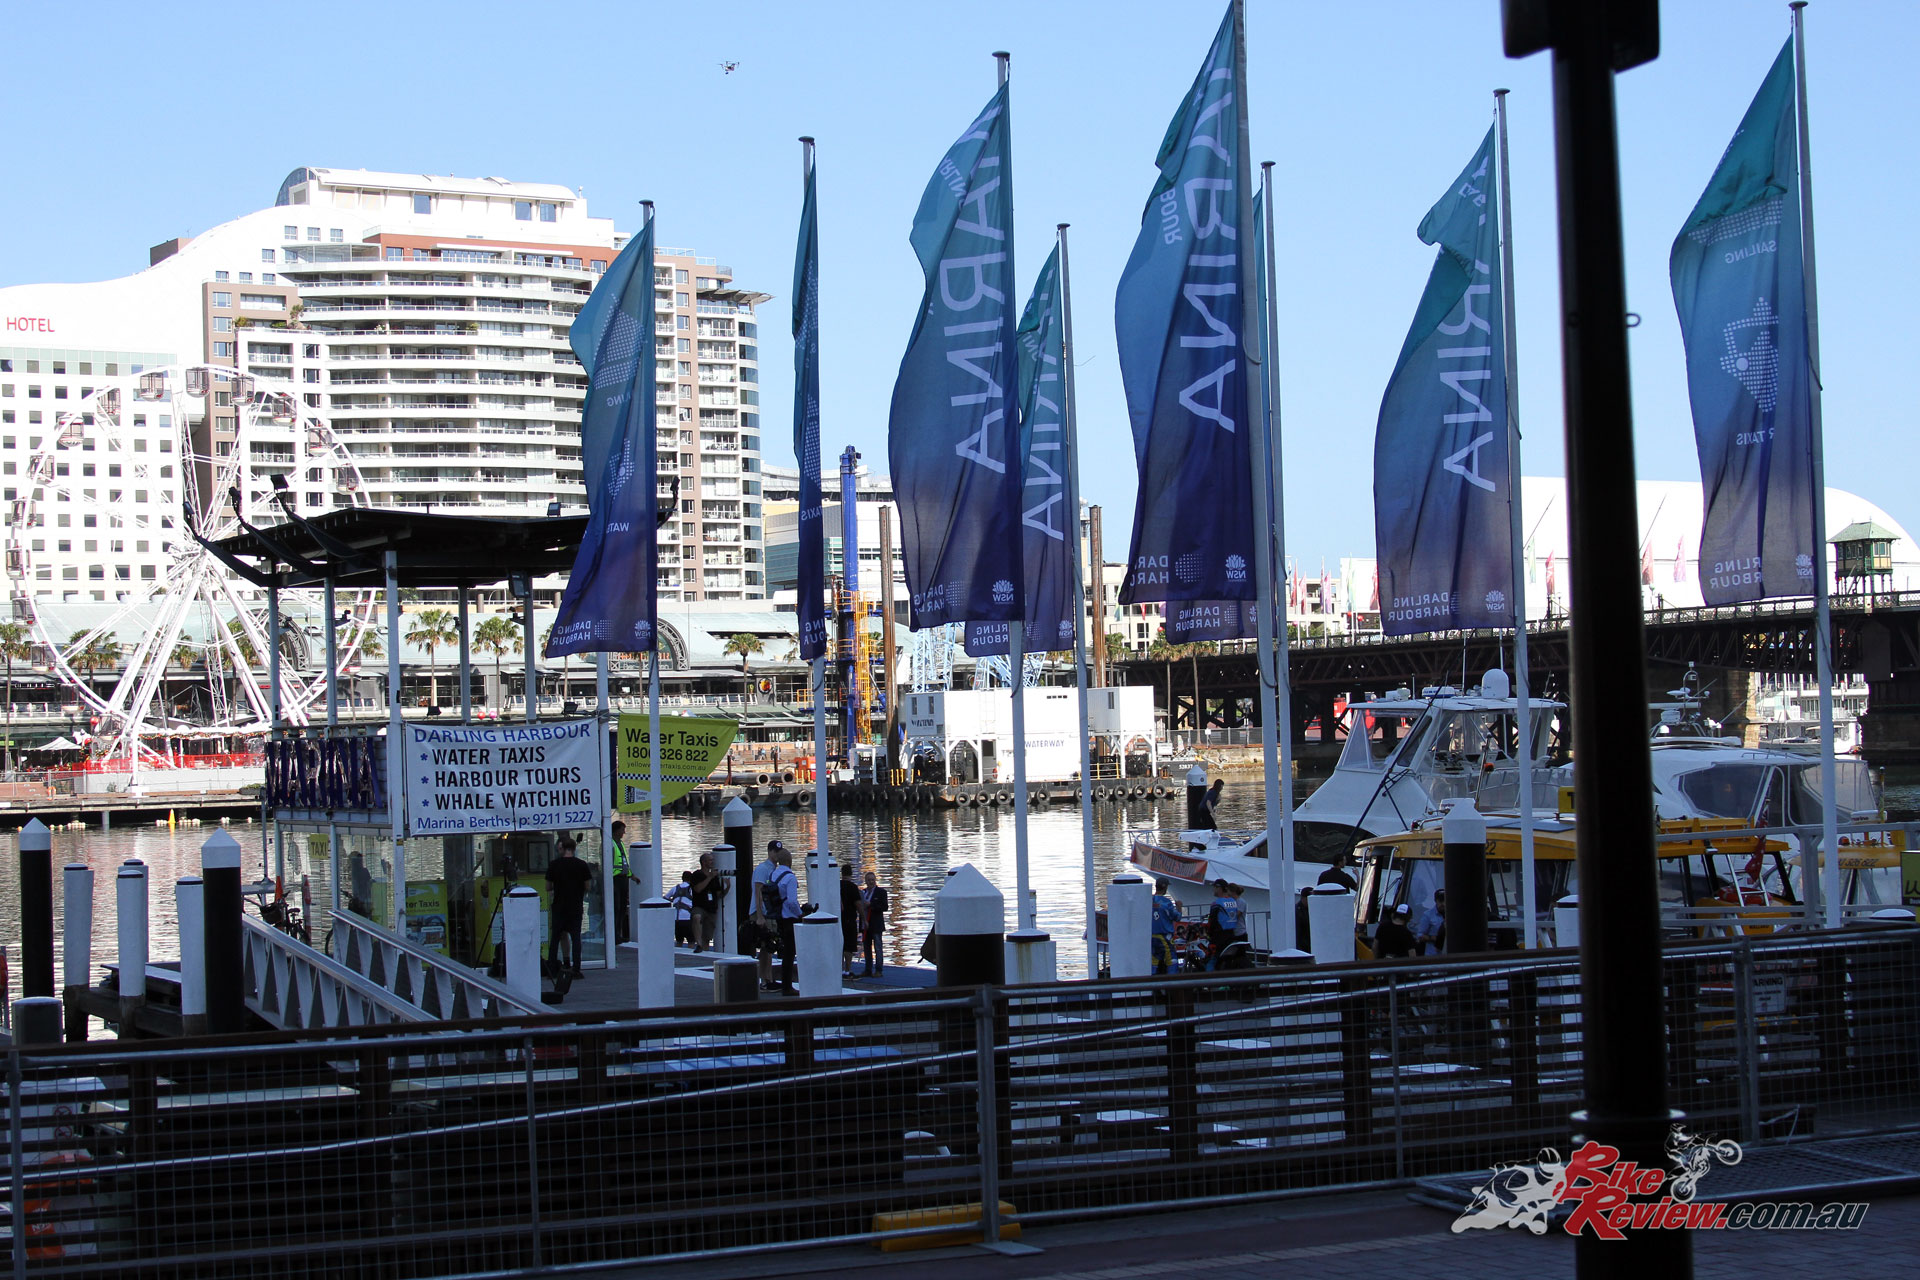 Great conditions across the weekend ensured the perfect venue for the Sydney Motorcycle Show and Robbie Maddison's impressive waterbike displays